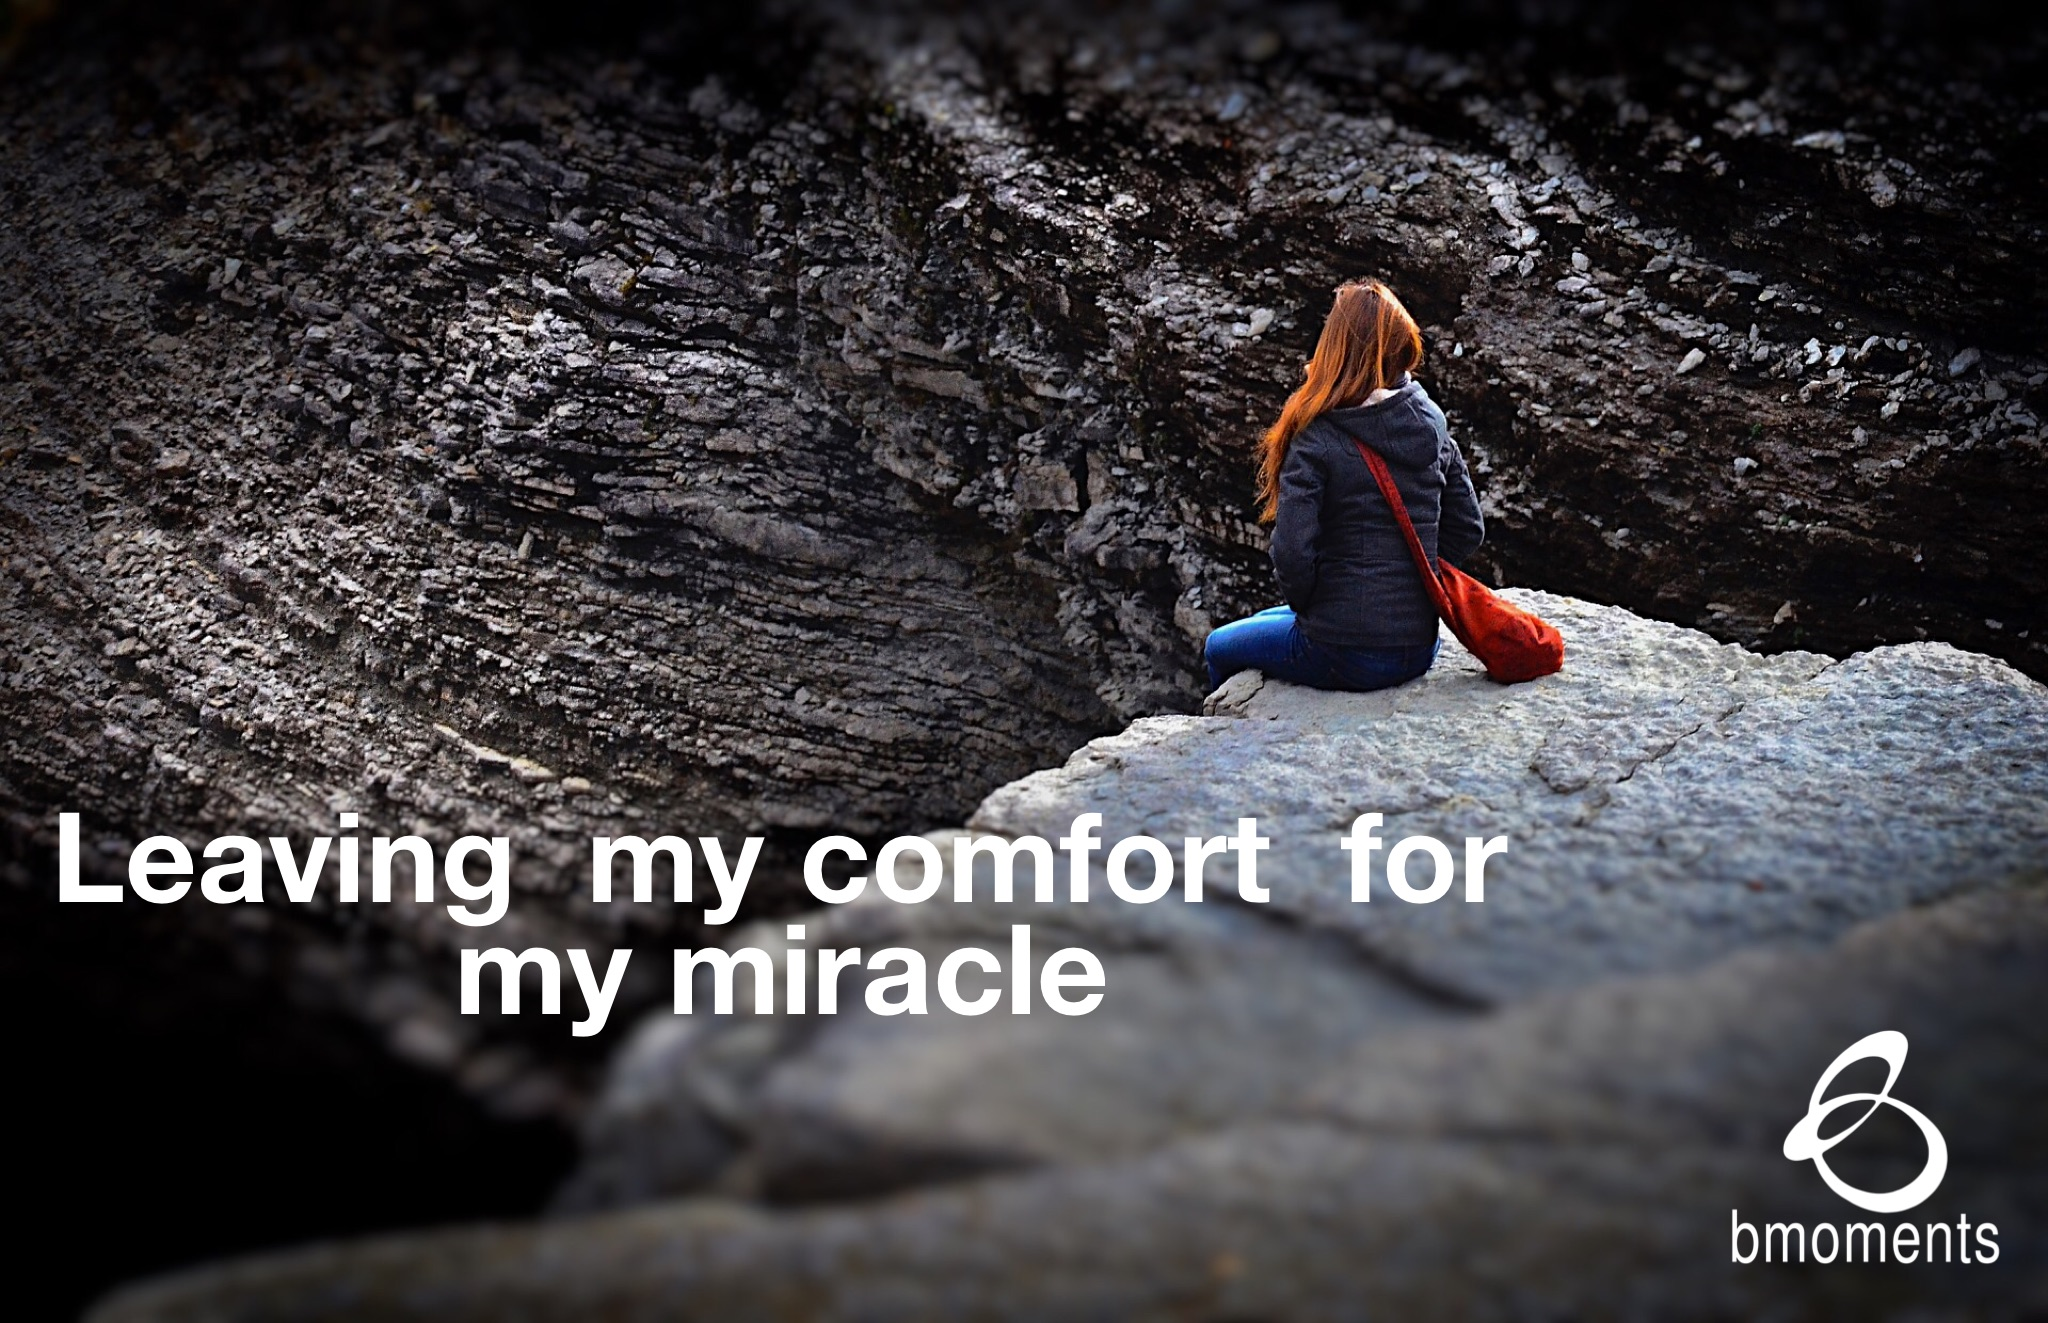 Leaving My Comfort for My Miracle